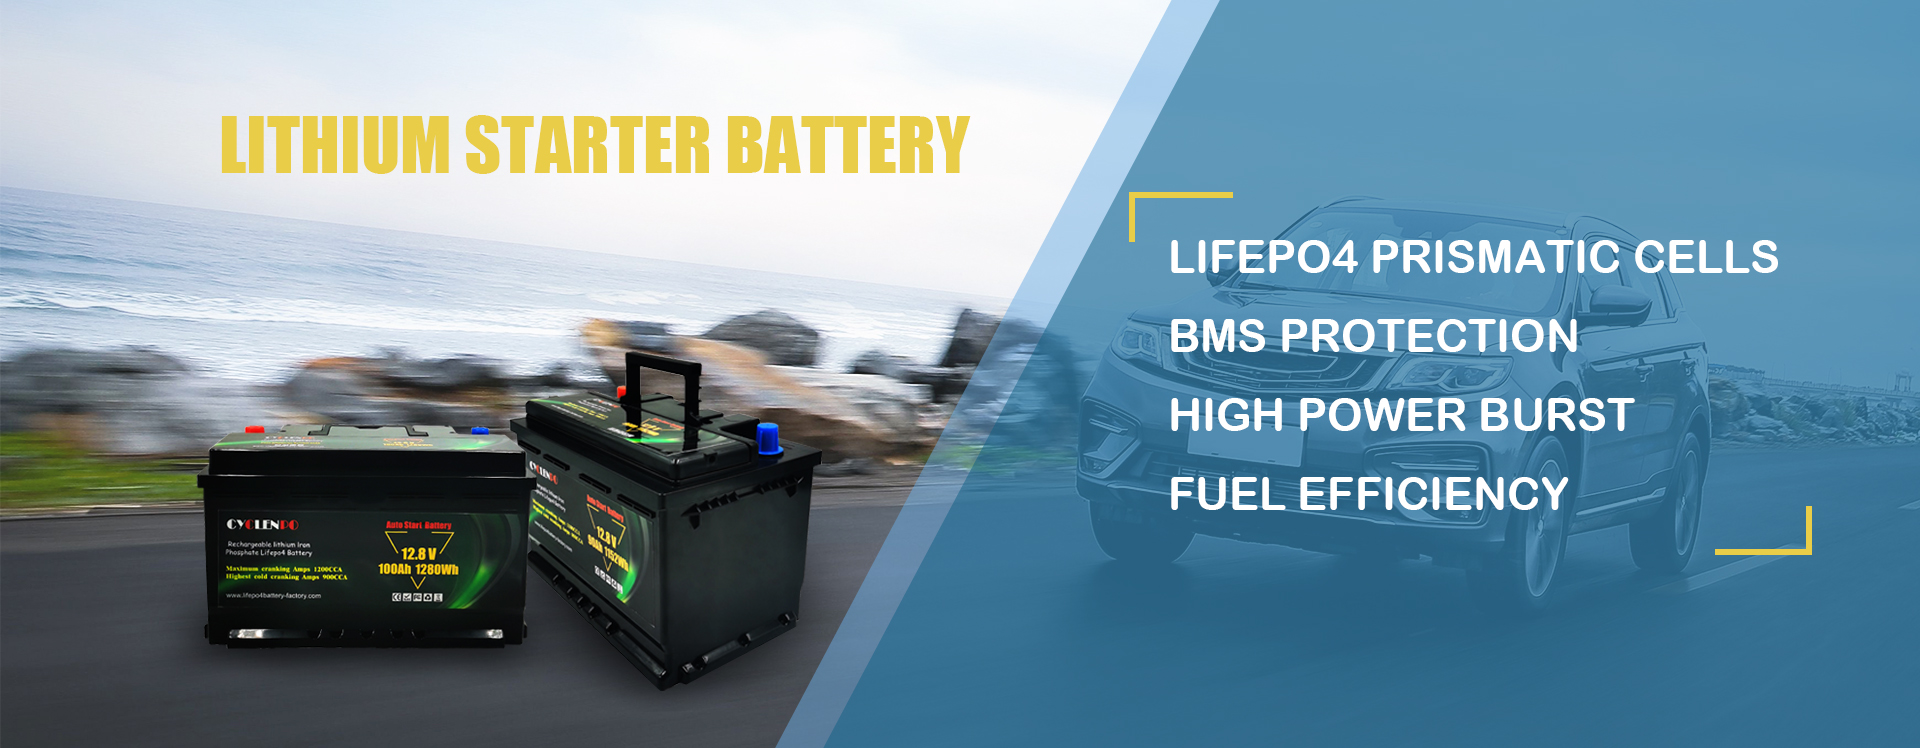 lifepo4 lithium battery suppliers